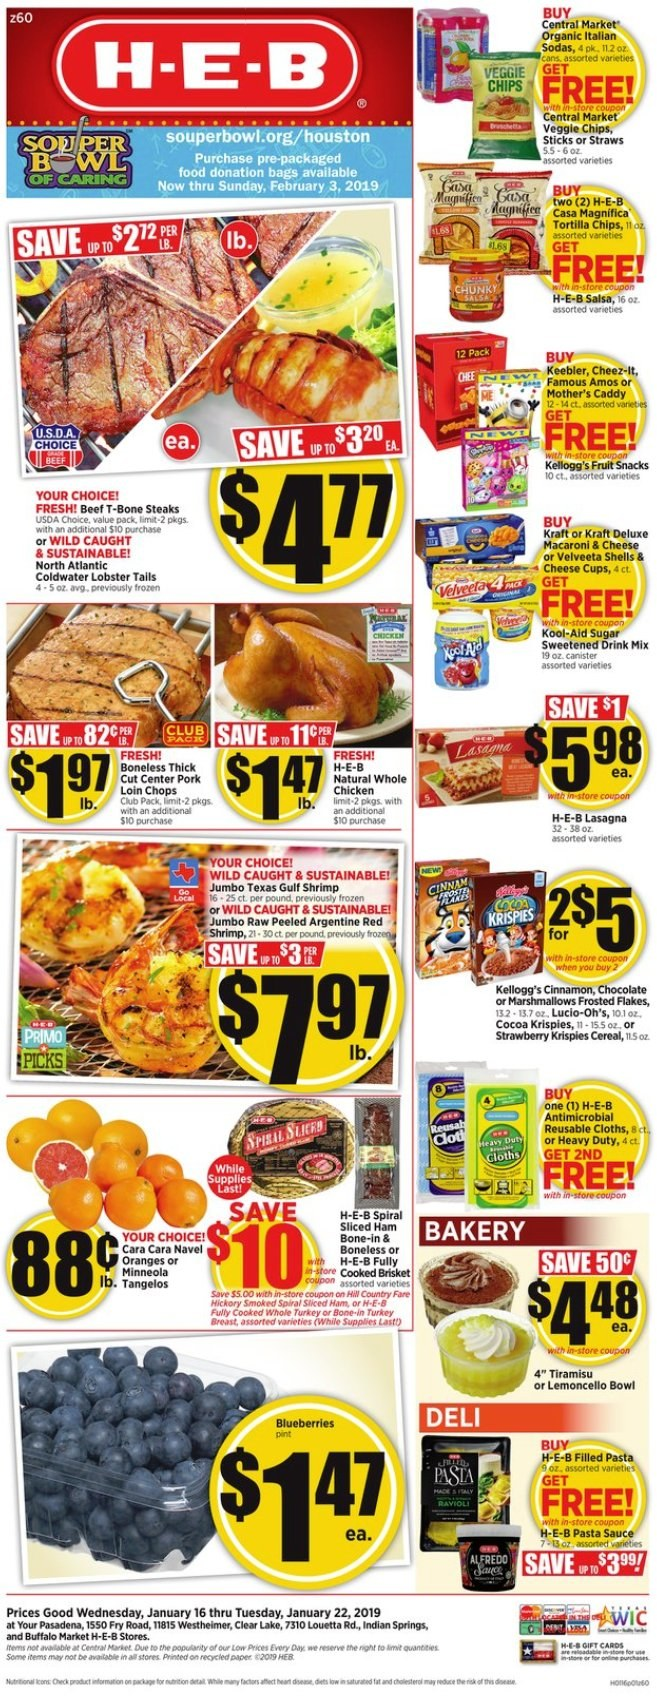 H-E-B Flyer  - 01.16.2019 - 01.22.2019. Page 1.